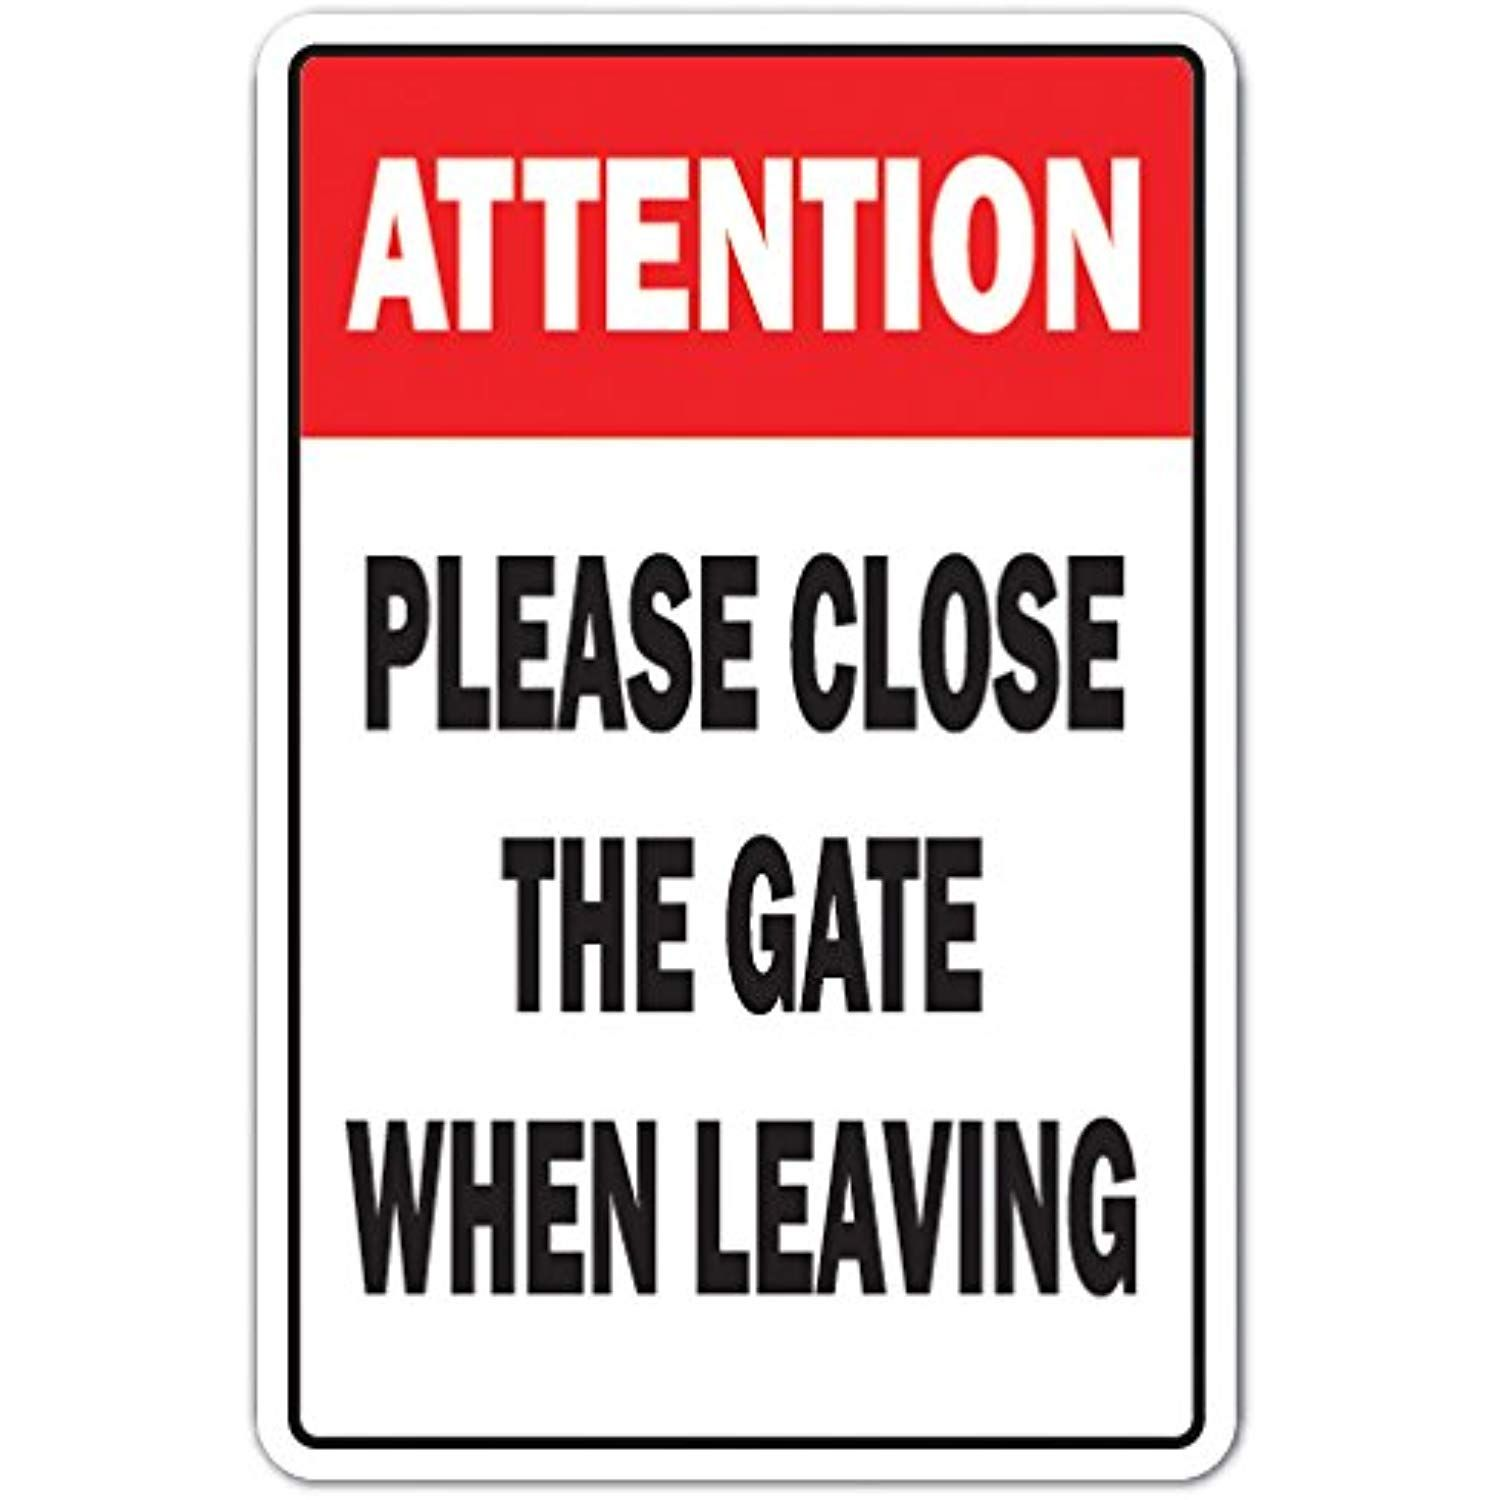 Attention Please Close The Gate Novelty Sign Indoor Outdoor Funny Home Da C Cor For Garages Living Rooms Bedroom Of Wall Signs Funny Home Decor Gifts Sign